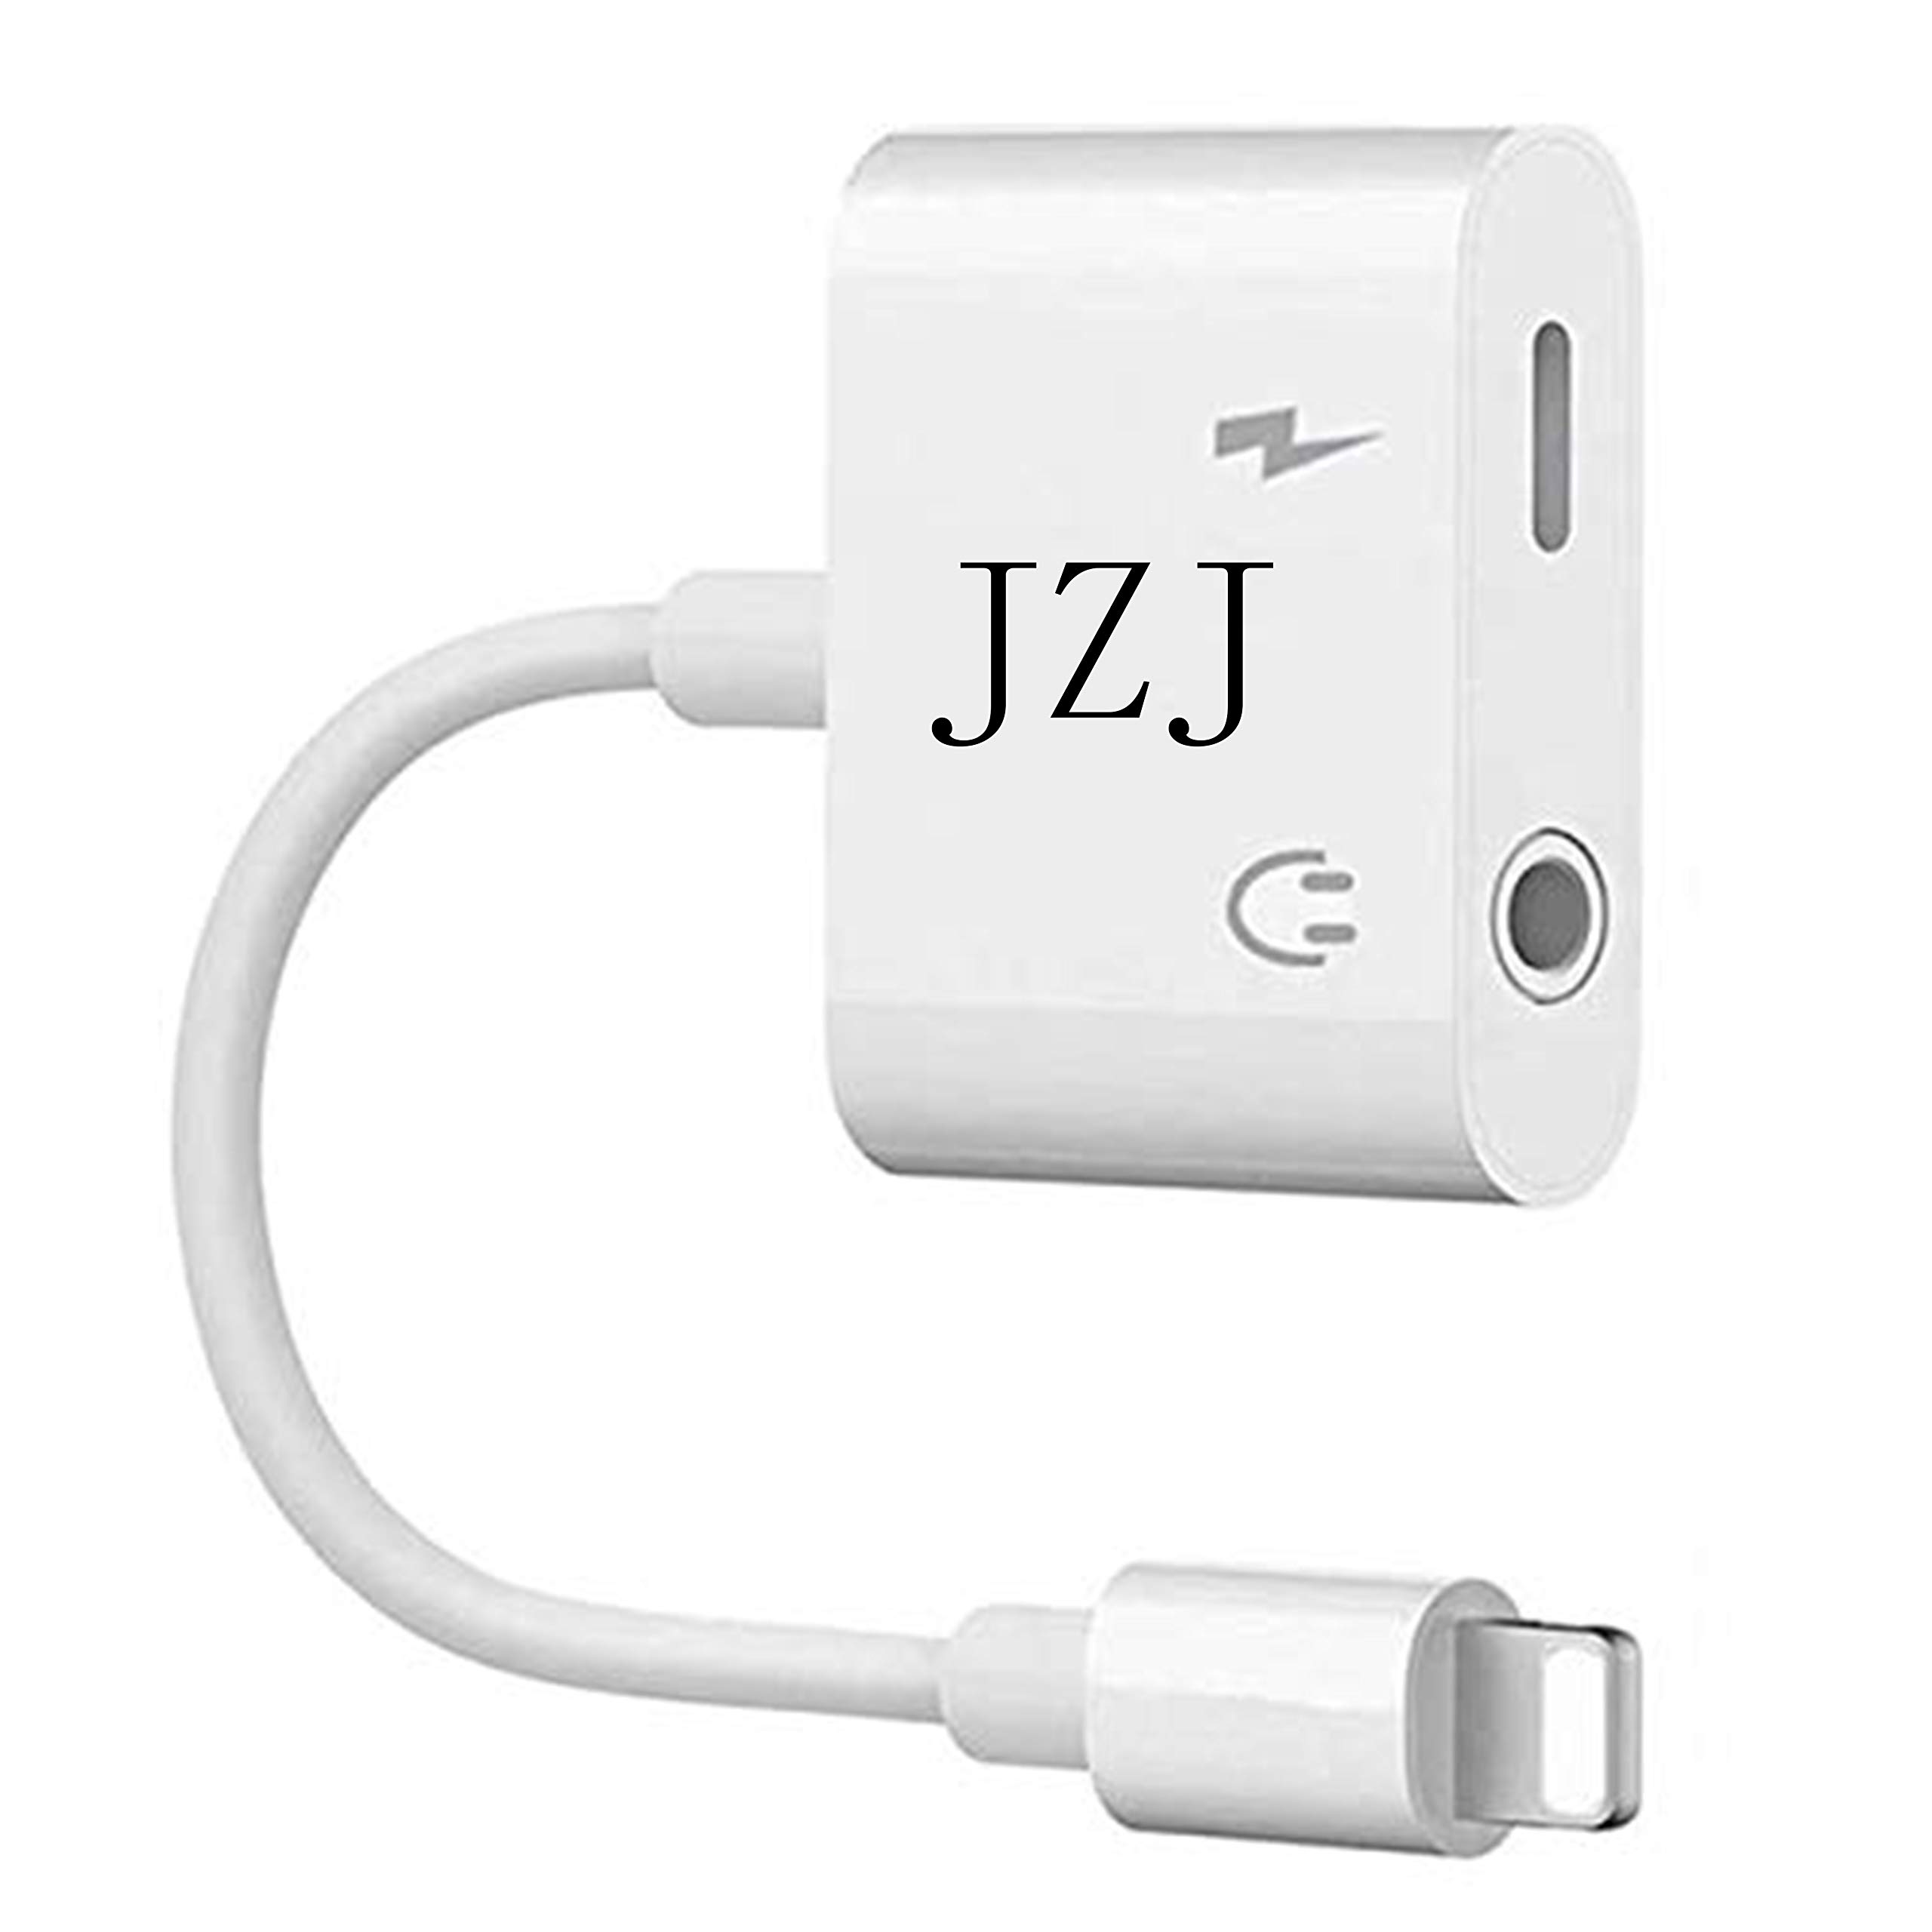 JZJ 2 in 1 Jack Audio Headphone Adapter Earphone Jack Splitter Charger Cable Compatible by JZJ (Image #1)